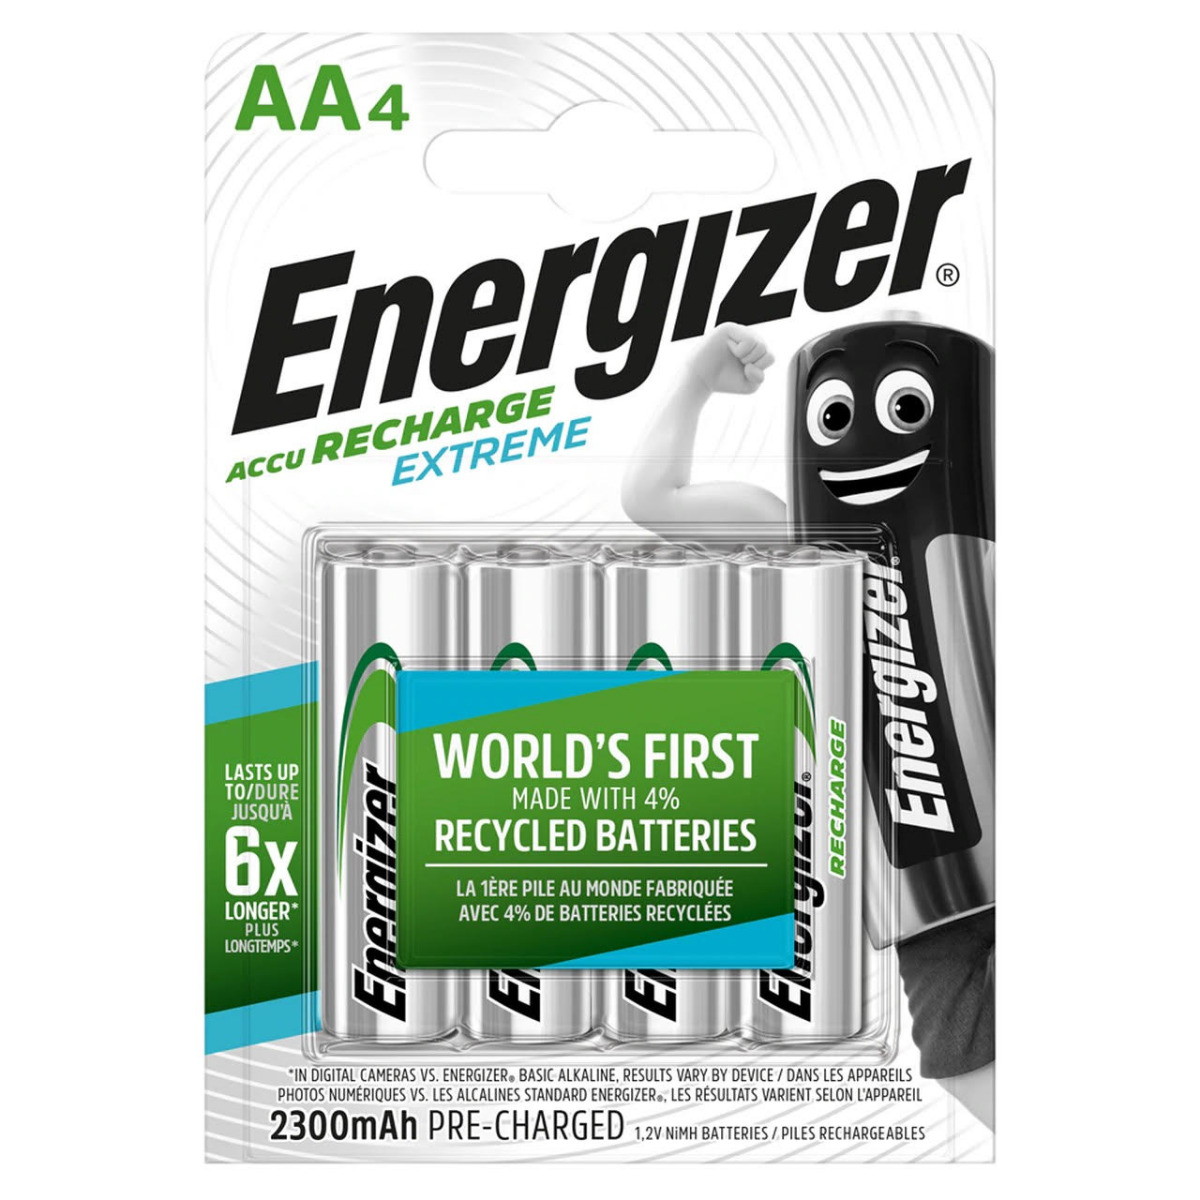 Energizer Extreme AA HR6 2300mAh Pre-charged Rechargeable Batteries   4 Pack